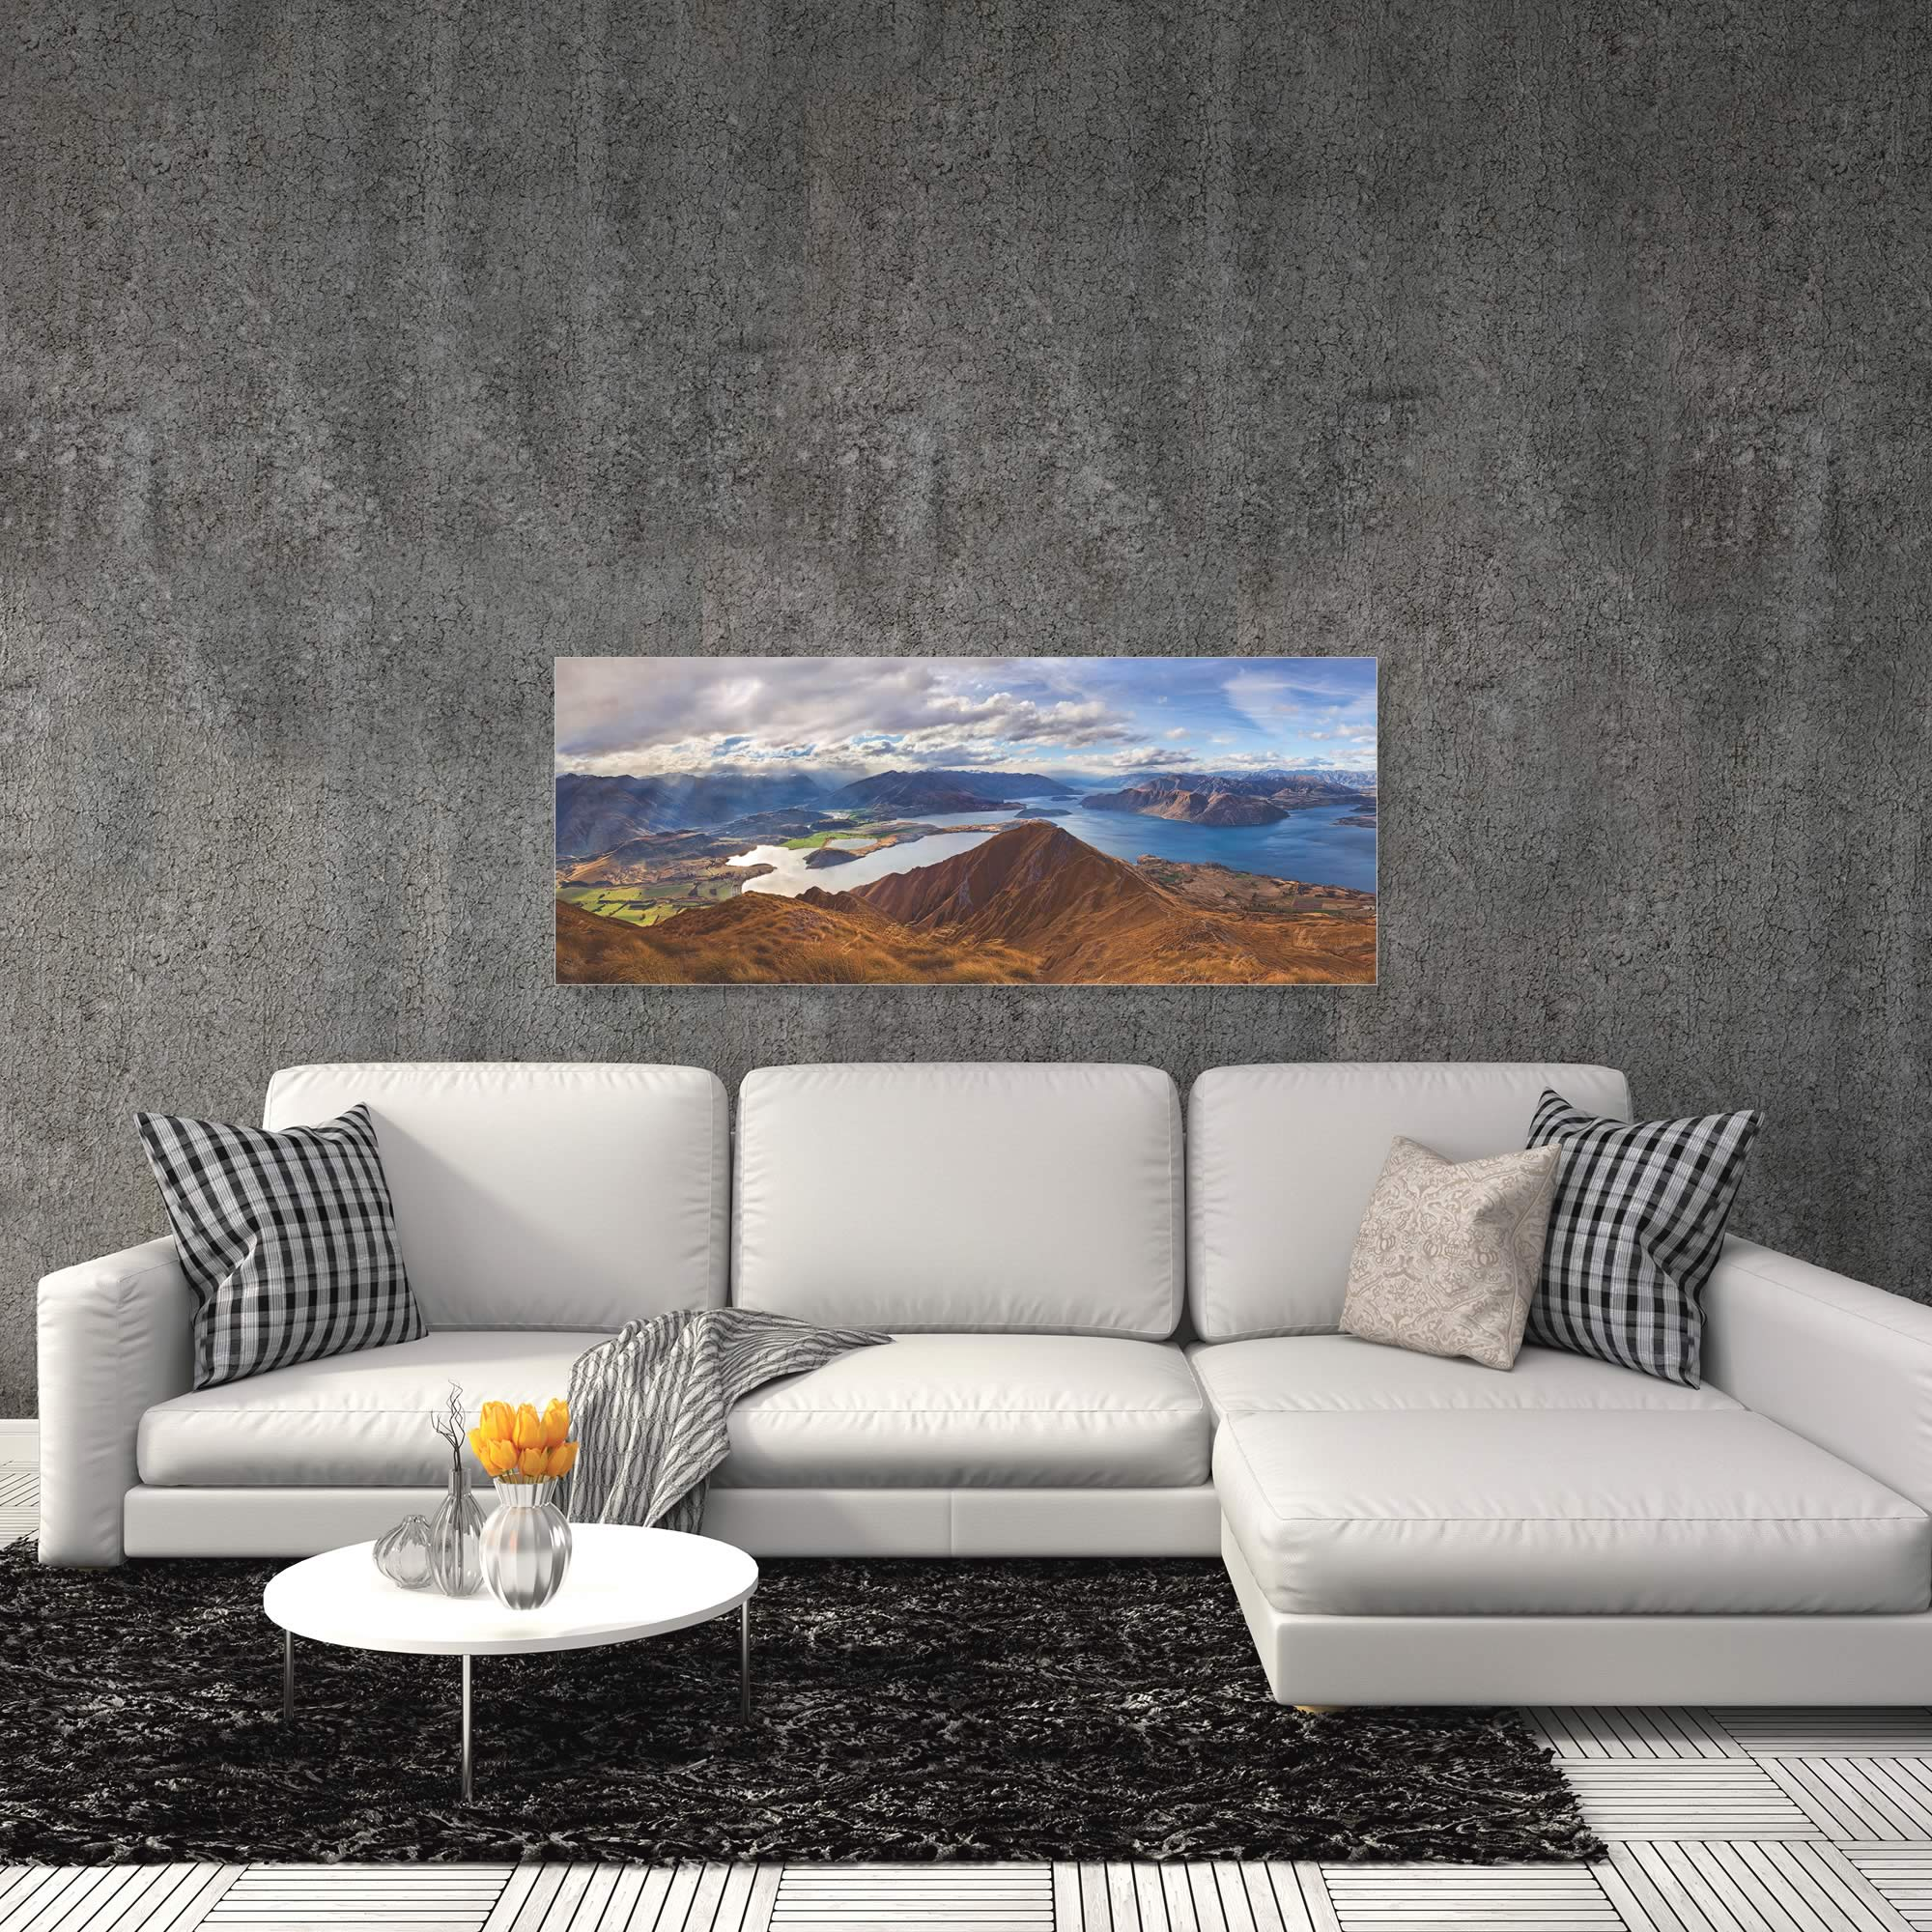 Roys Peak by Yan Zhang - Landscape Art on Metal or Acrylic - Alternate View 1